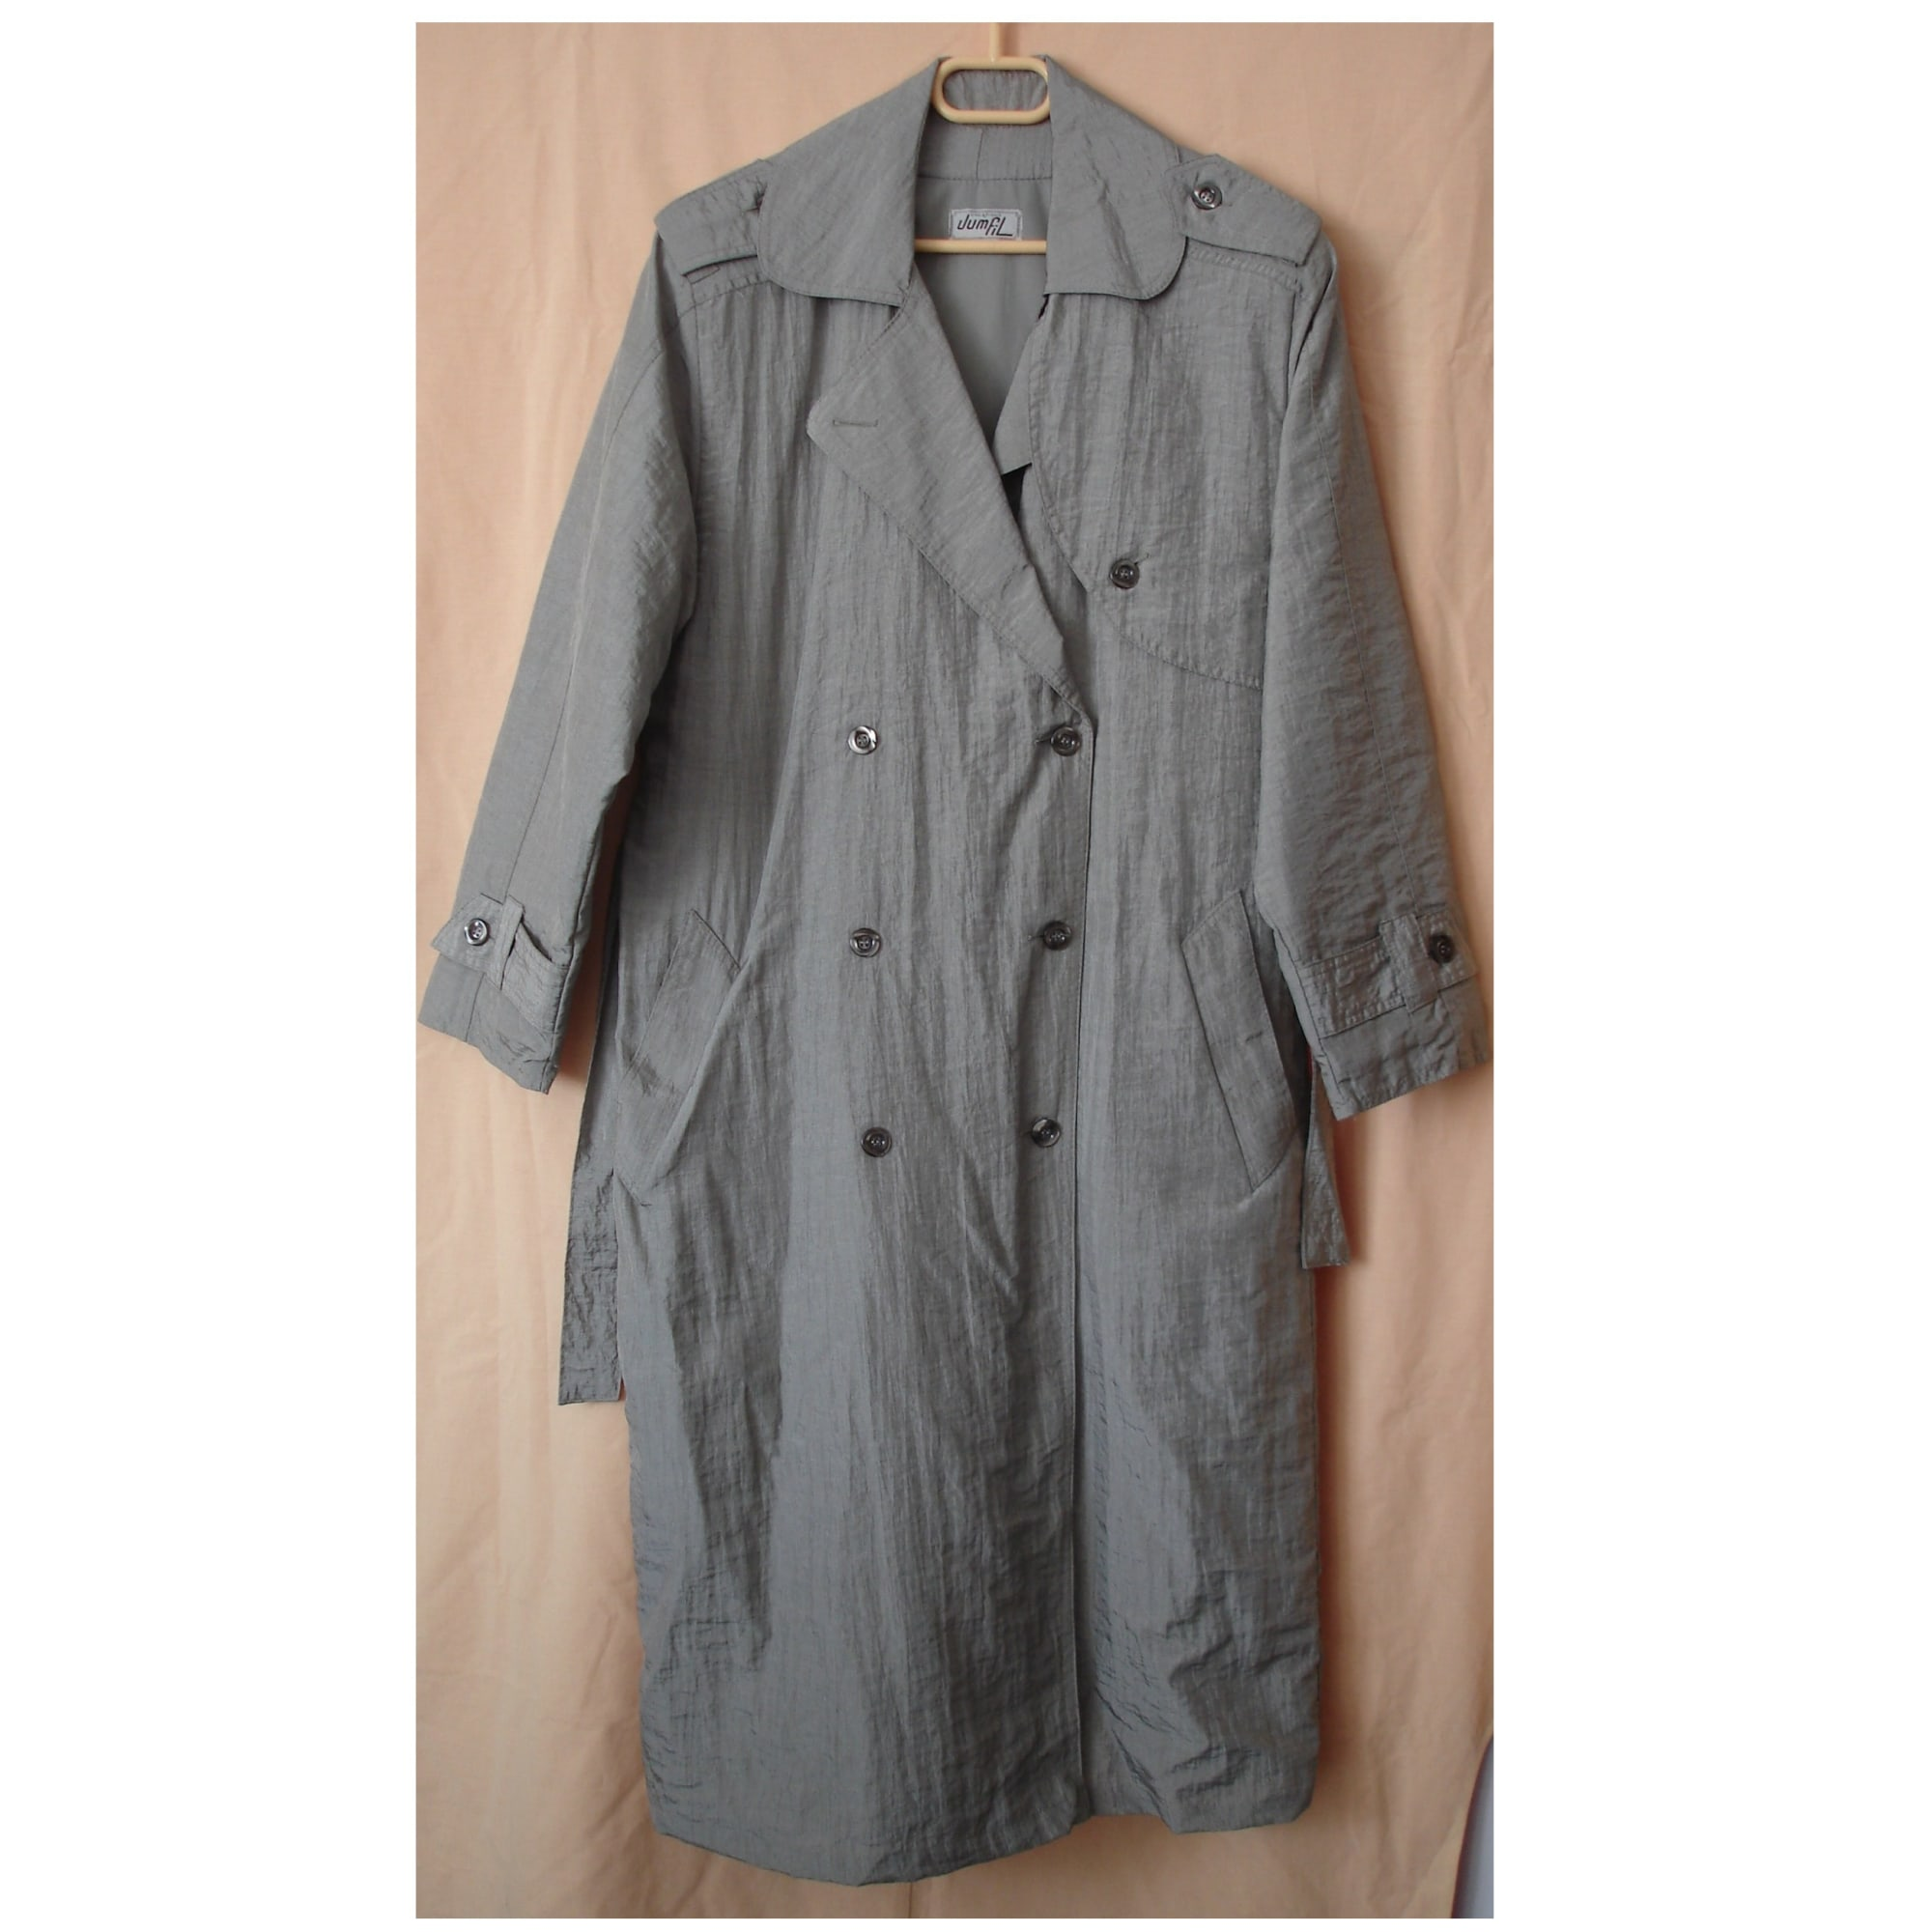 Imperméable, trench JUMFIL Gris, anthracite